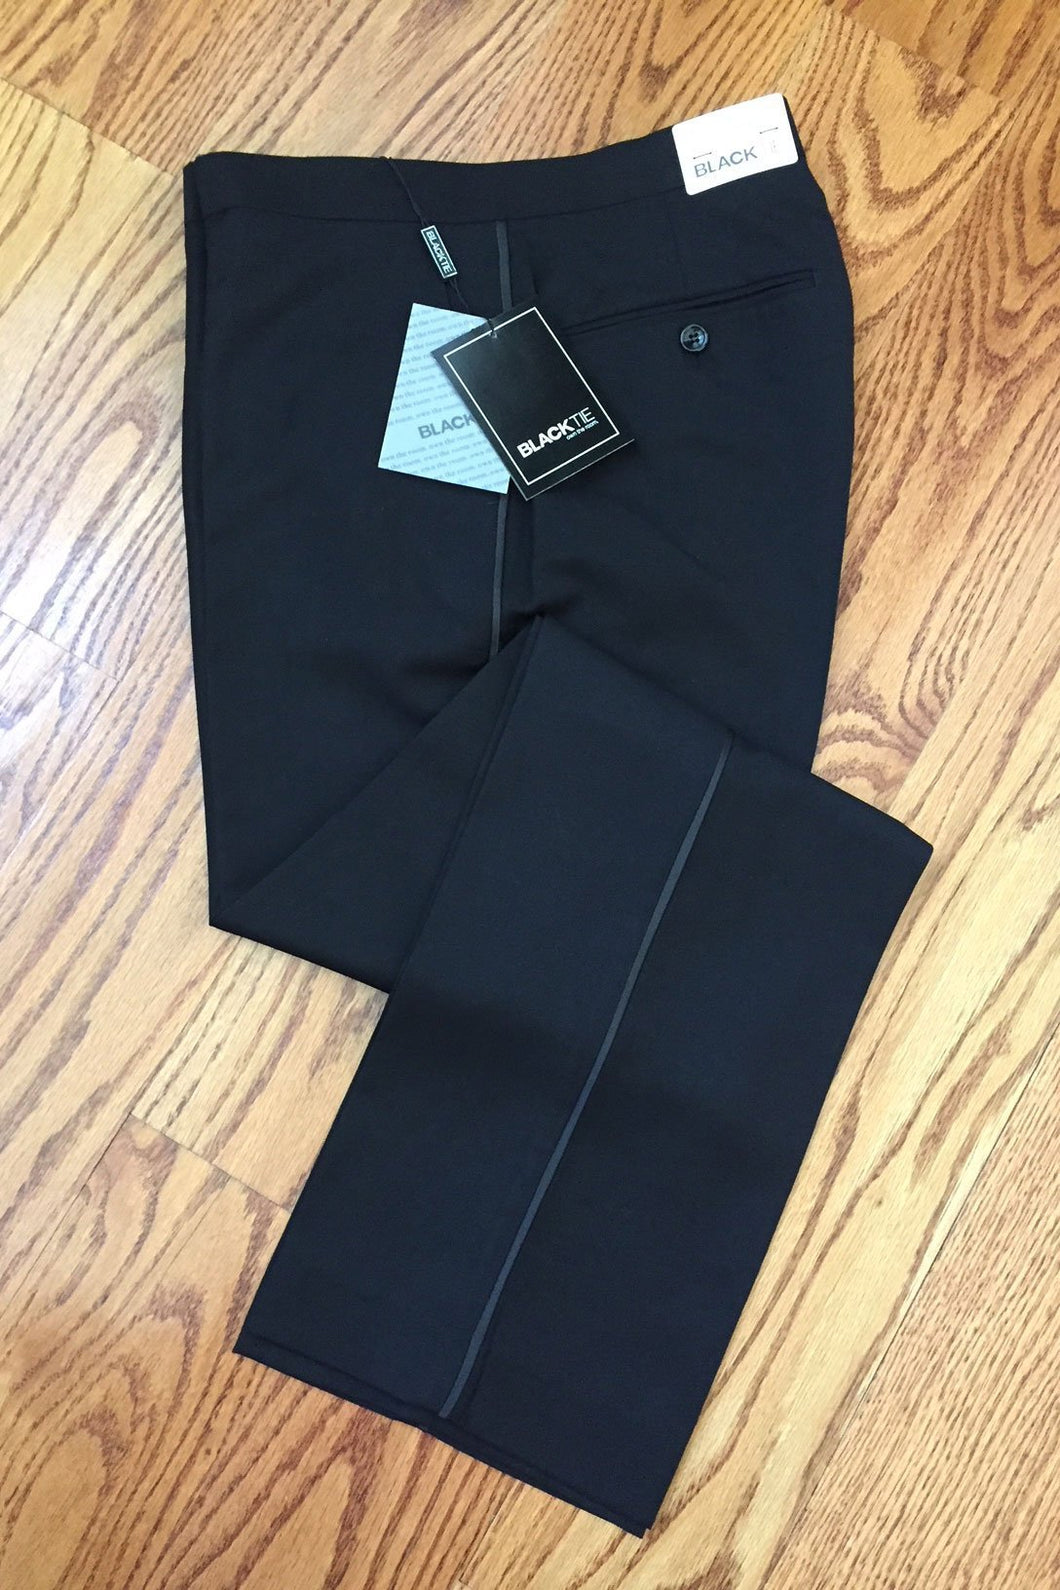 Black Luxury Wool Blend Tuxedo Pants - Unhemmed